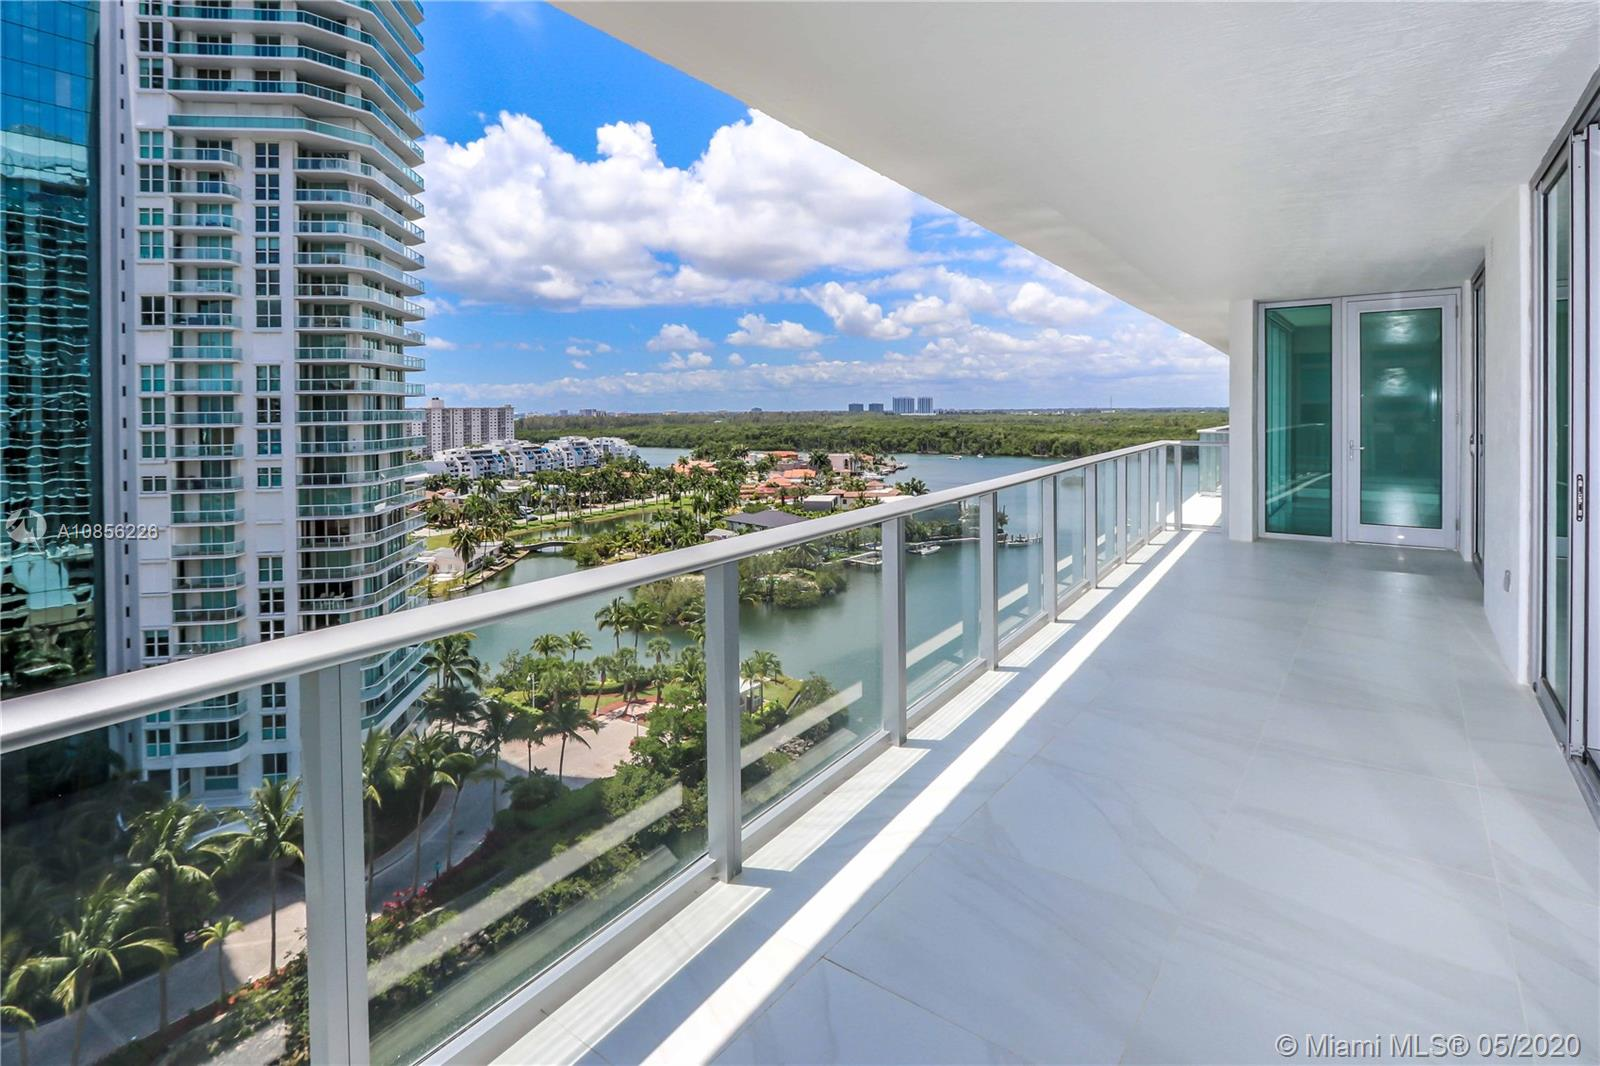 300 Sunny Isles Blvd #1202 Property Photo - Sunny Isles Beach, FL real estate listing